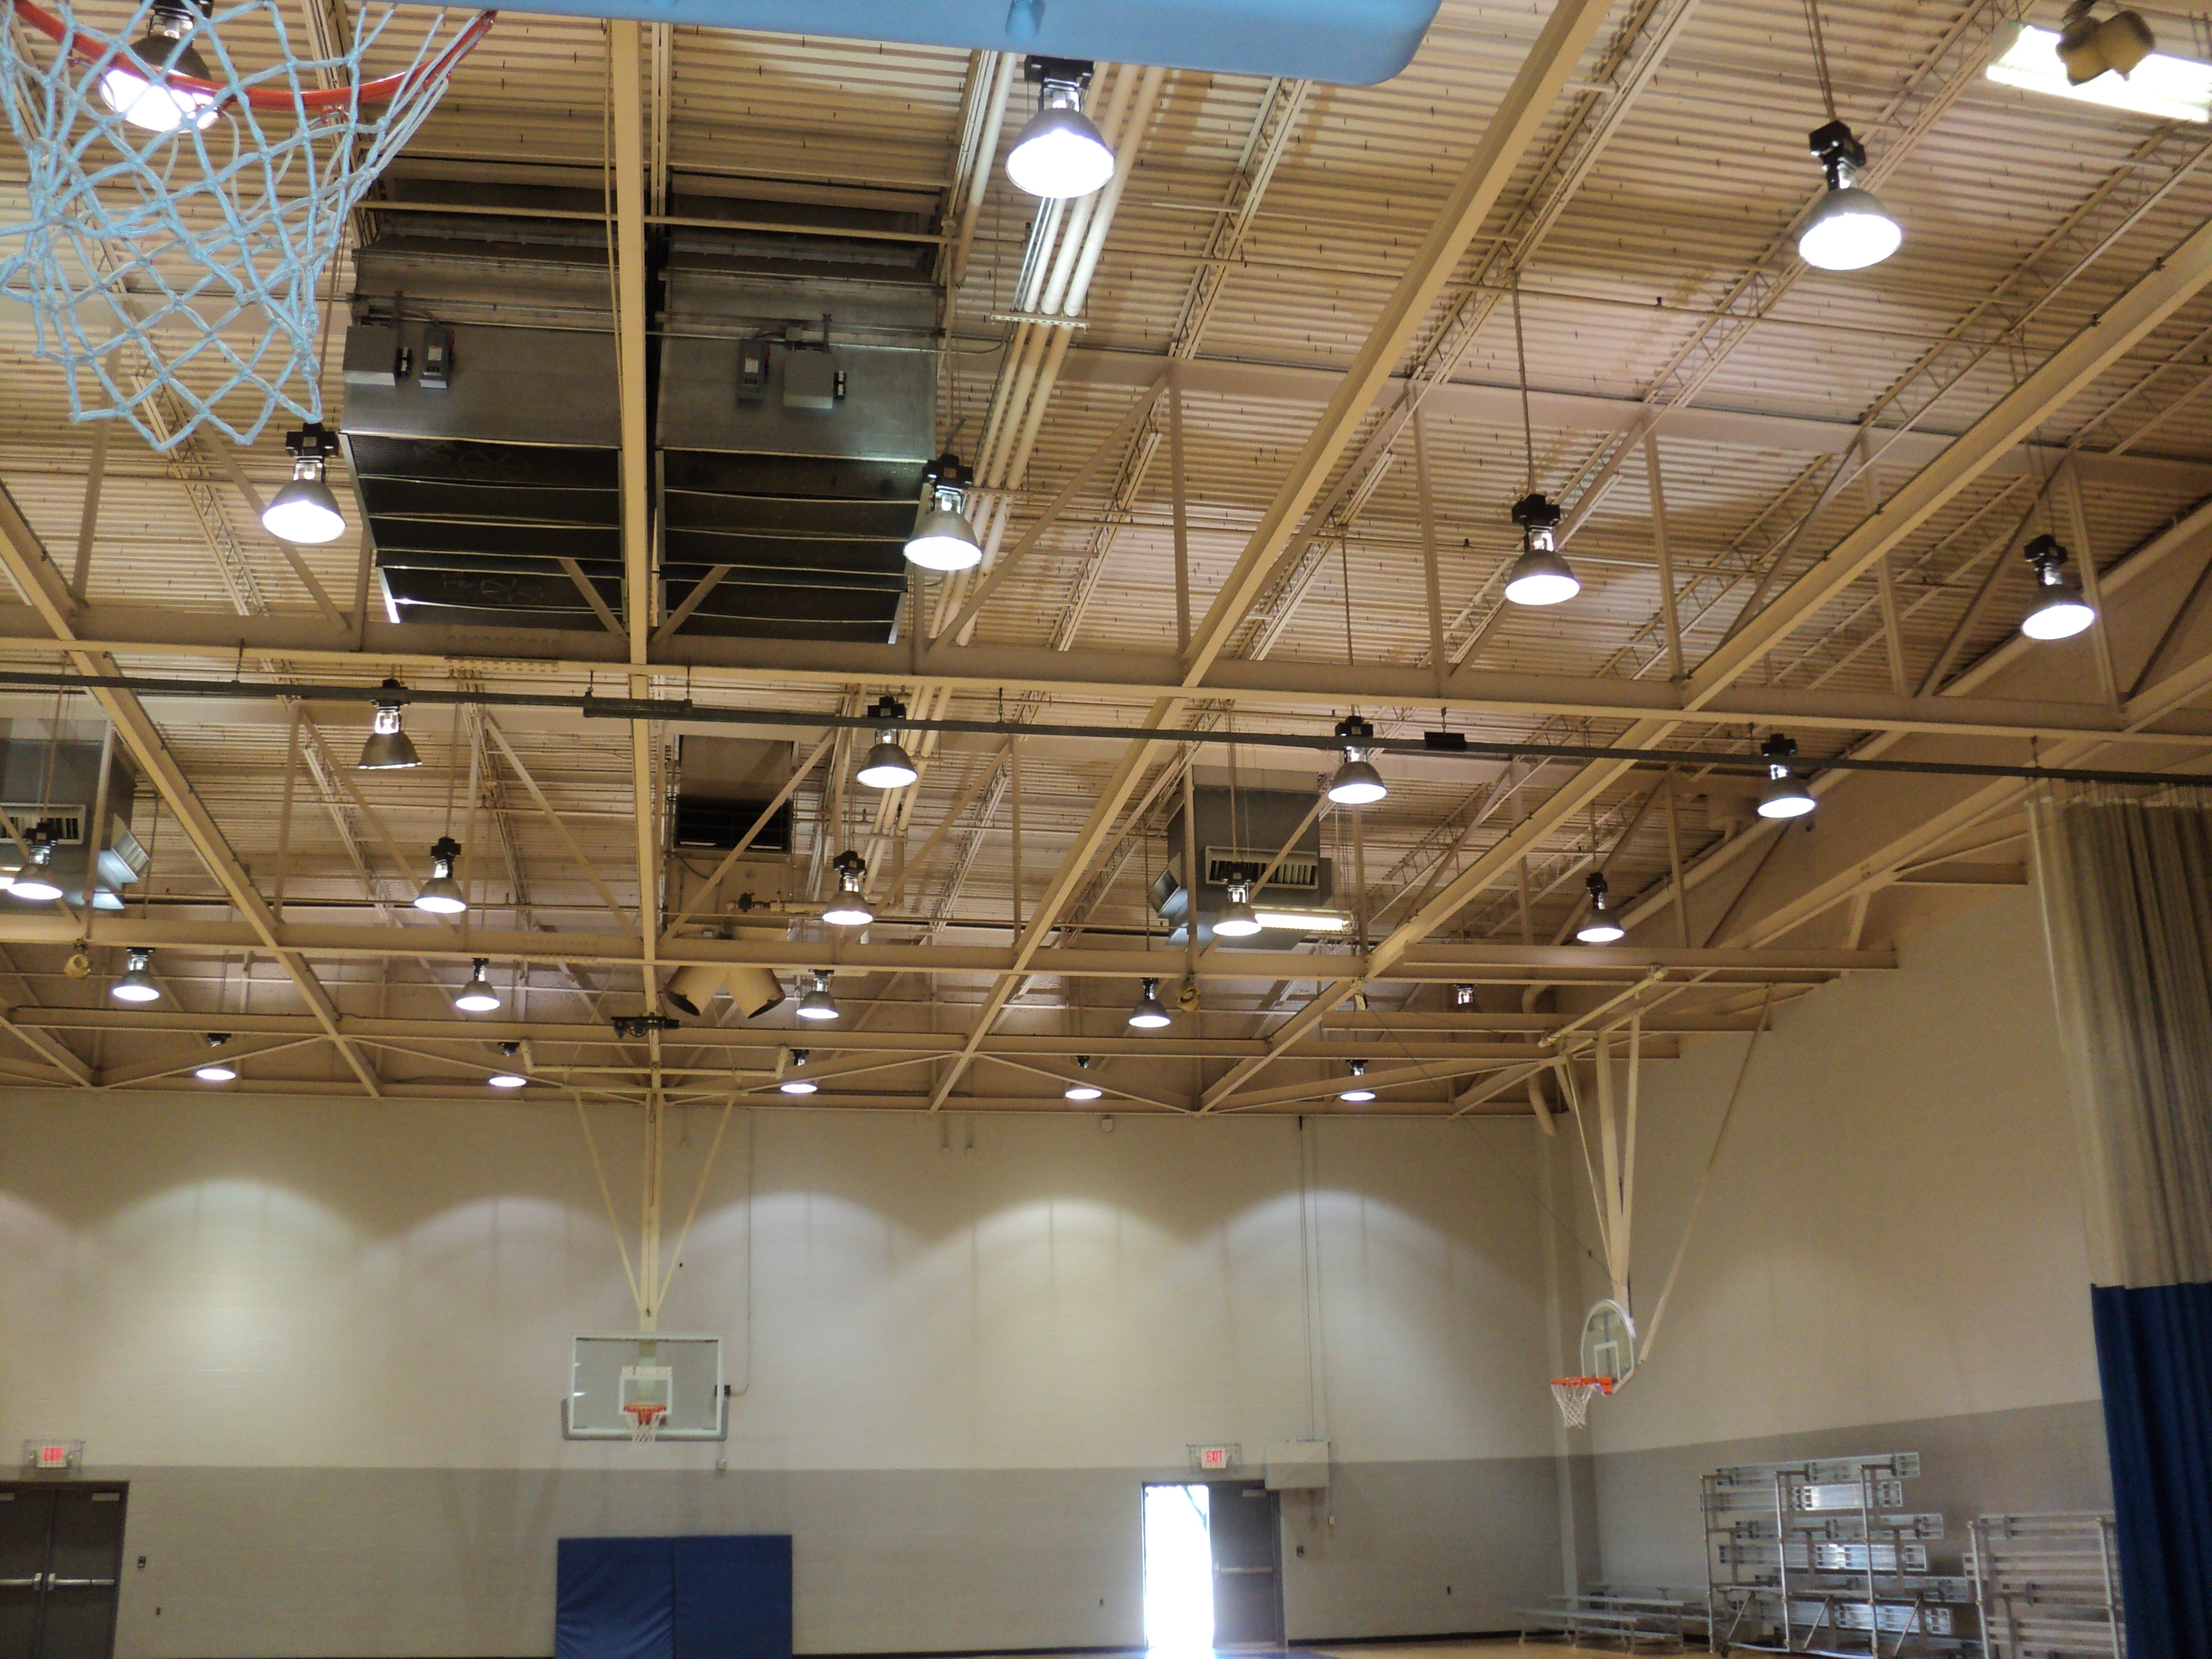 Picture of existing gymnasium roof system consisting of a long span fabricated truss and roof joists.